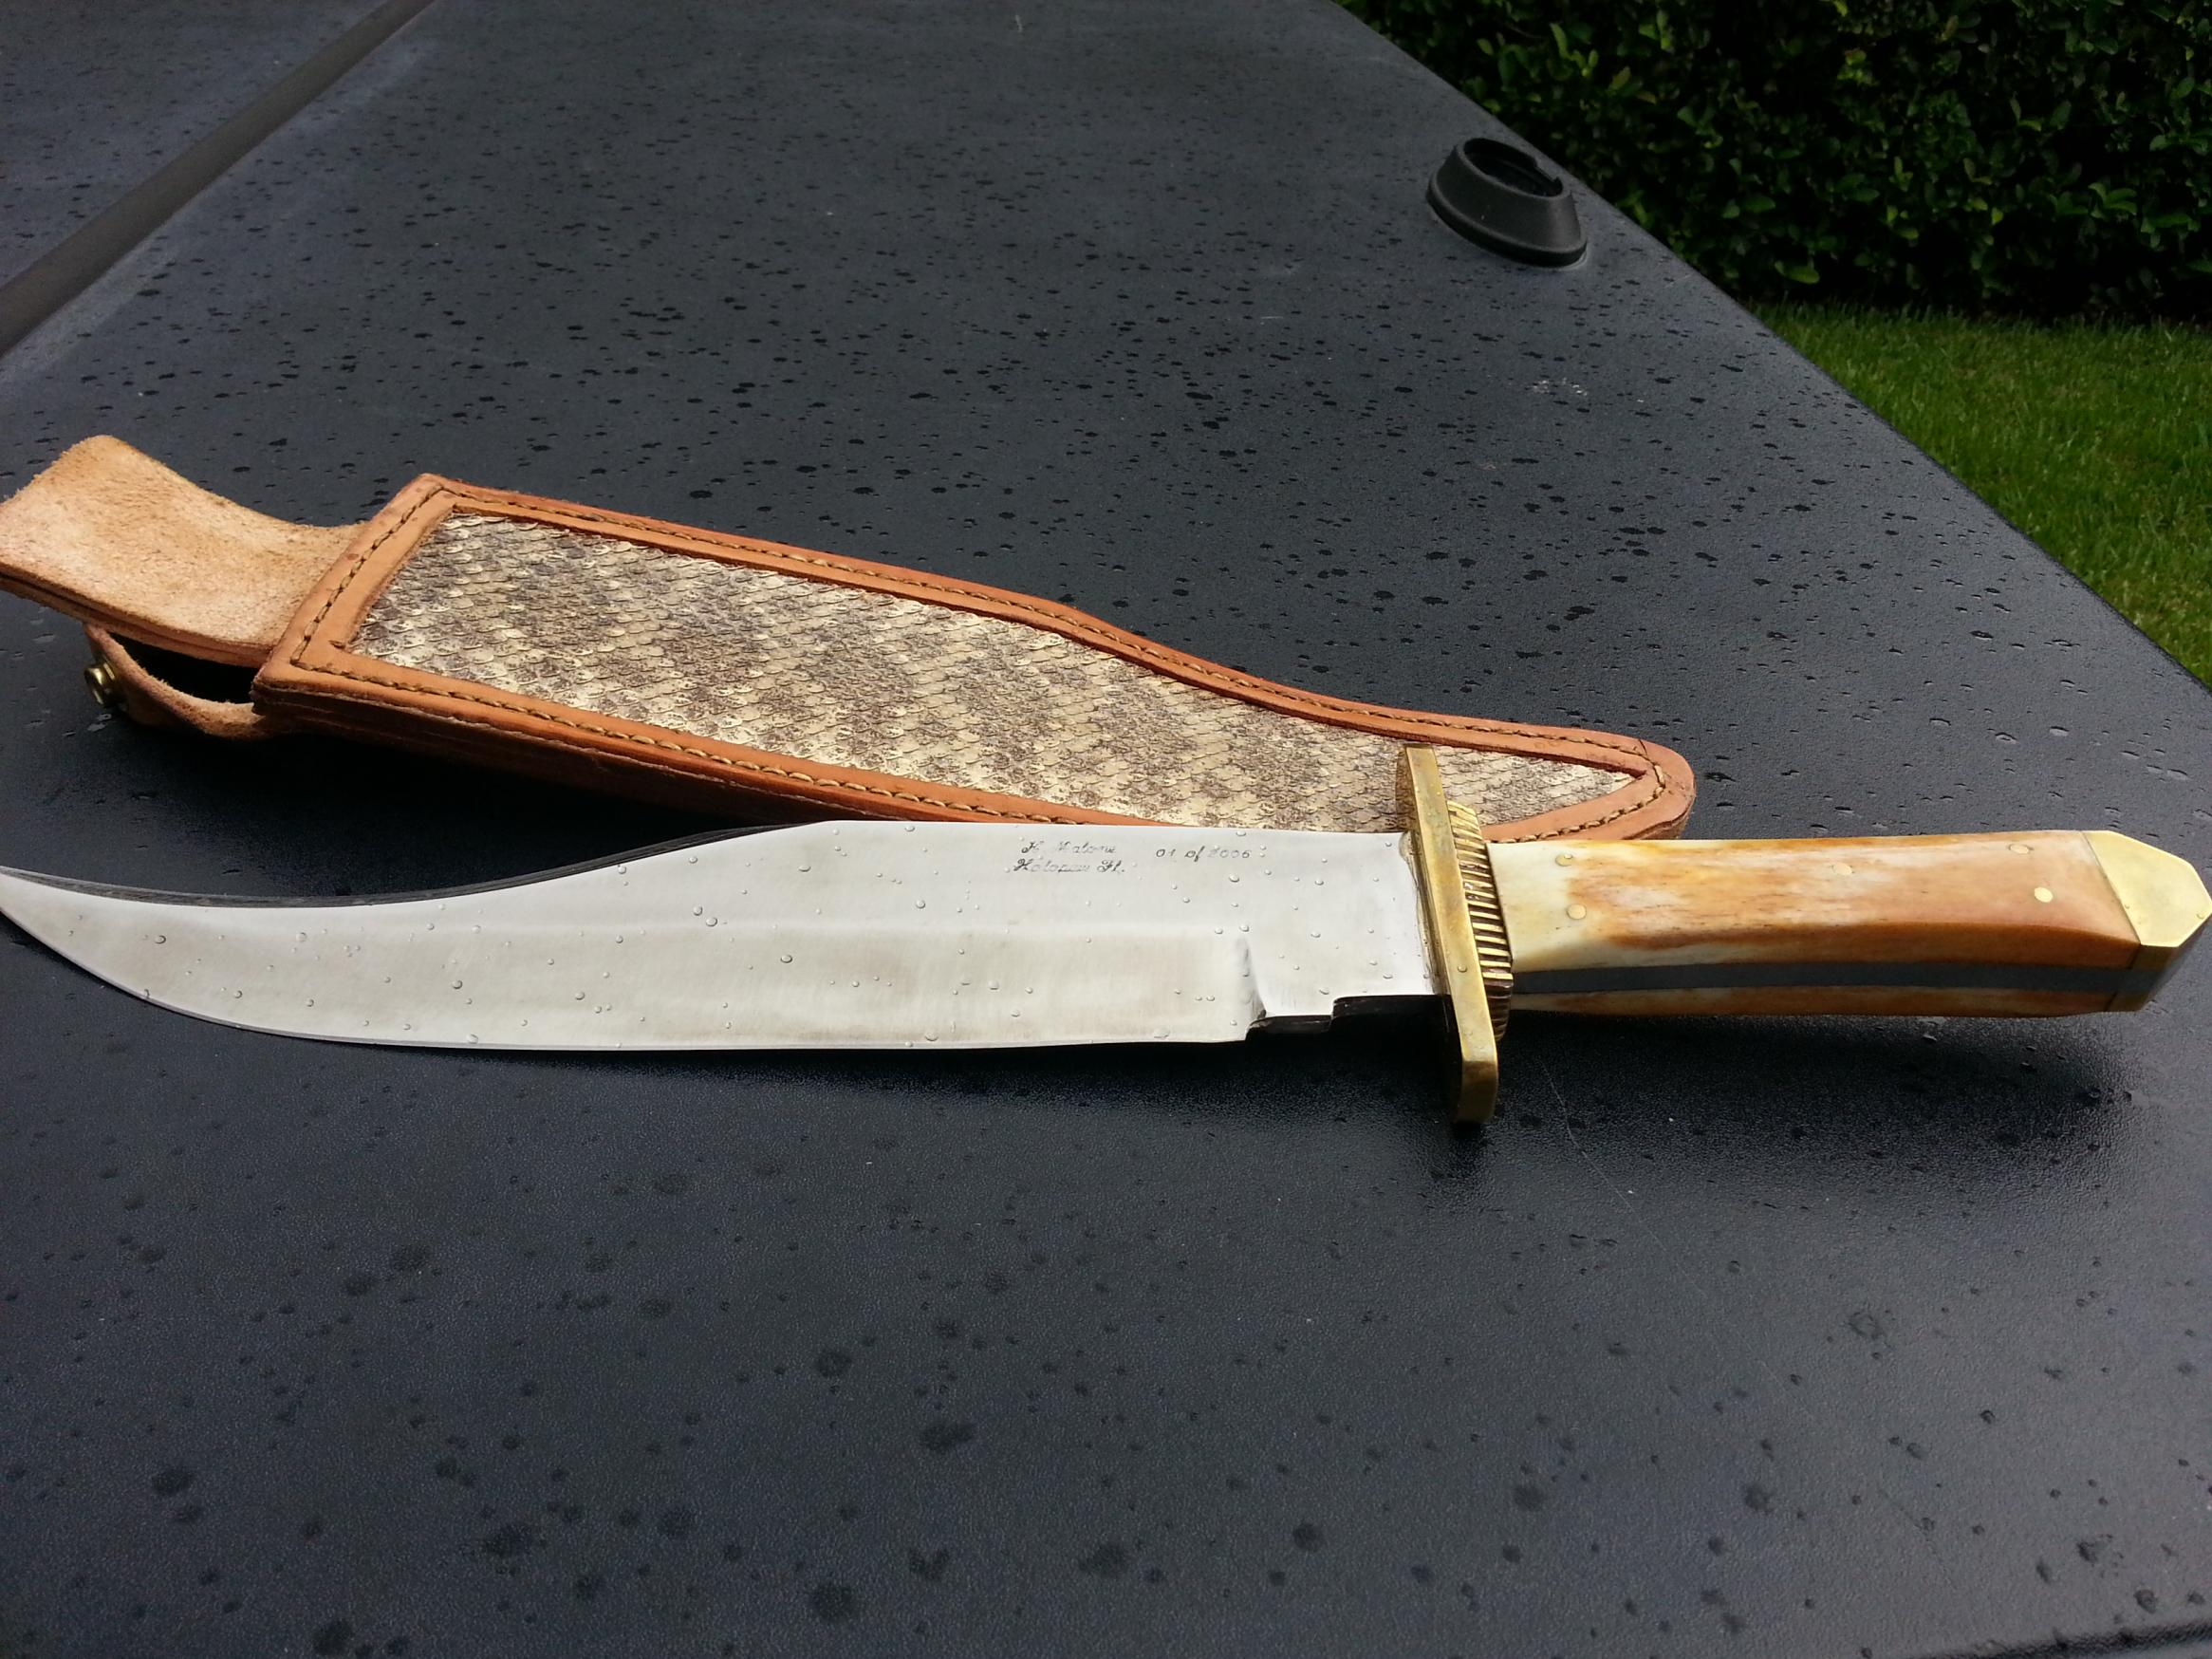 Awesome find on EBAY - Hand forged Bowie Knife from Florida-20130722_182504.jpg